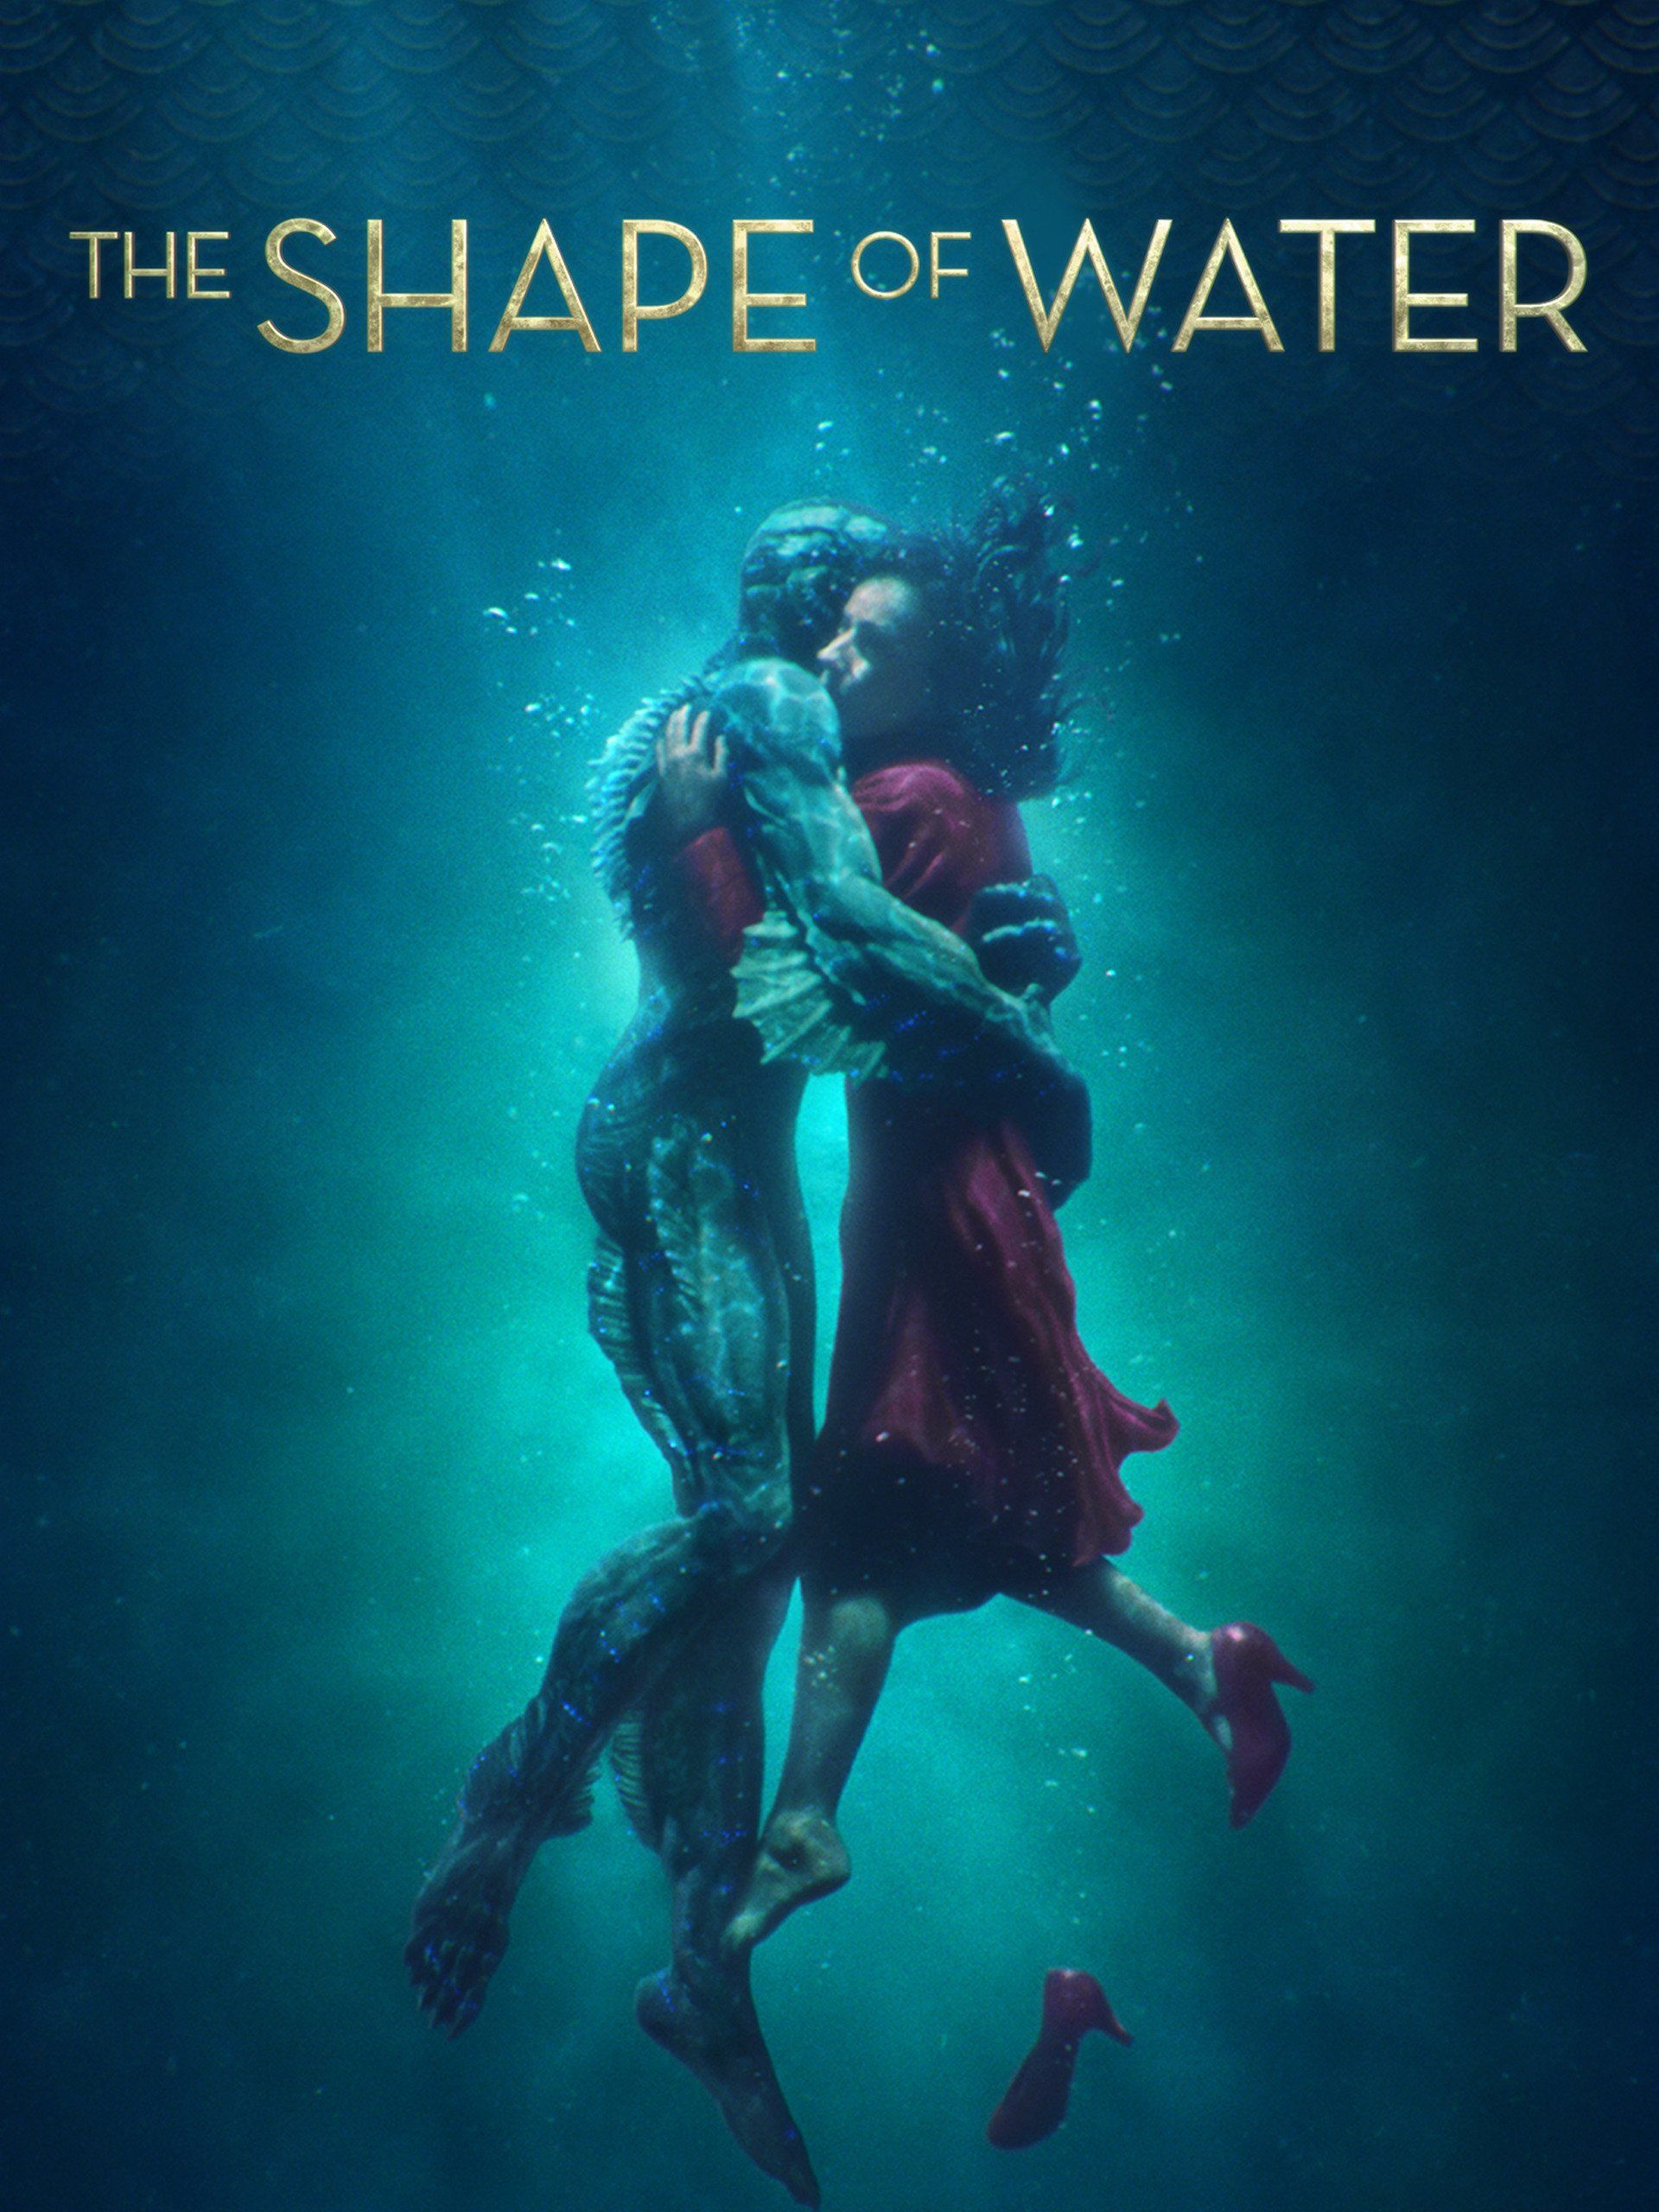 Pin By Nancy Golubic On Favorite Movies The Shape Of Water Romance Movies Water Movie